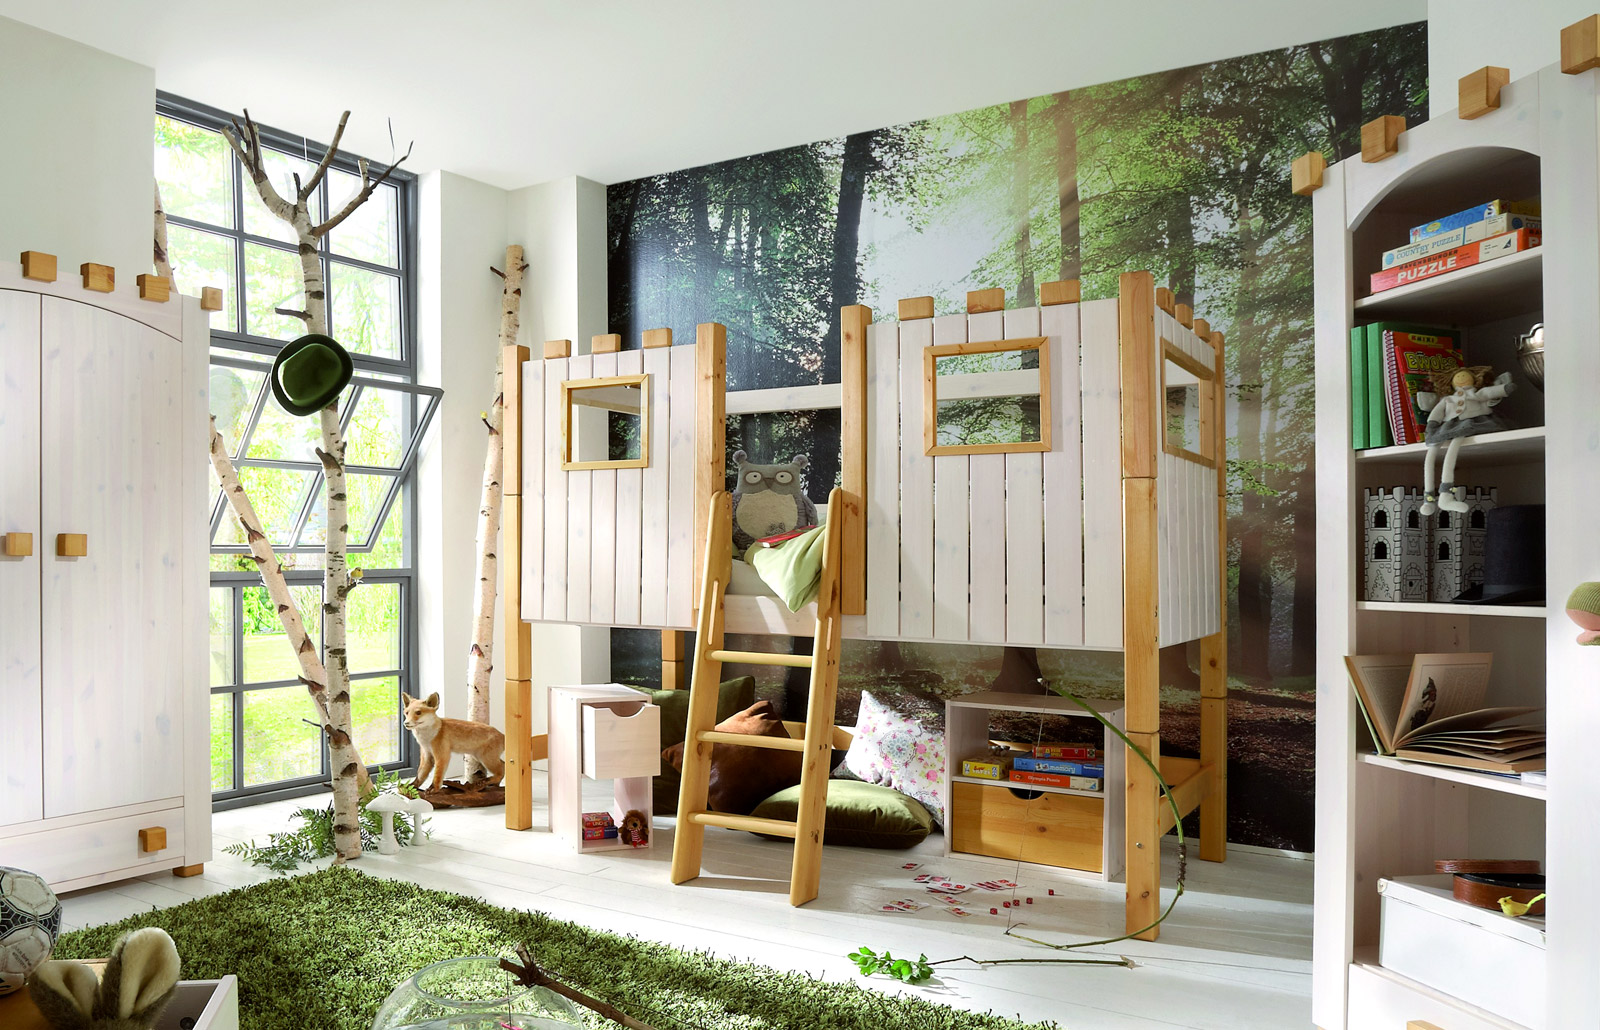 hochbett im kinderzimmer pro und contra das platzsparende. Black Bedroom Furniture Sets. Home Design Ideas